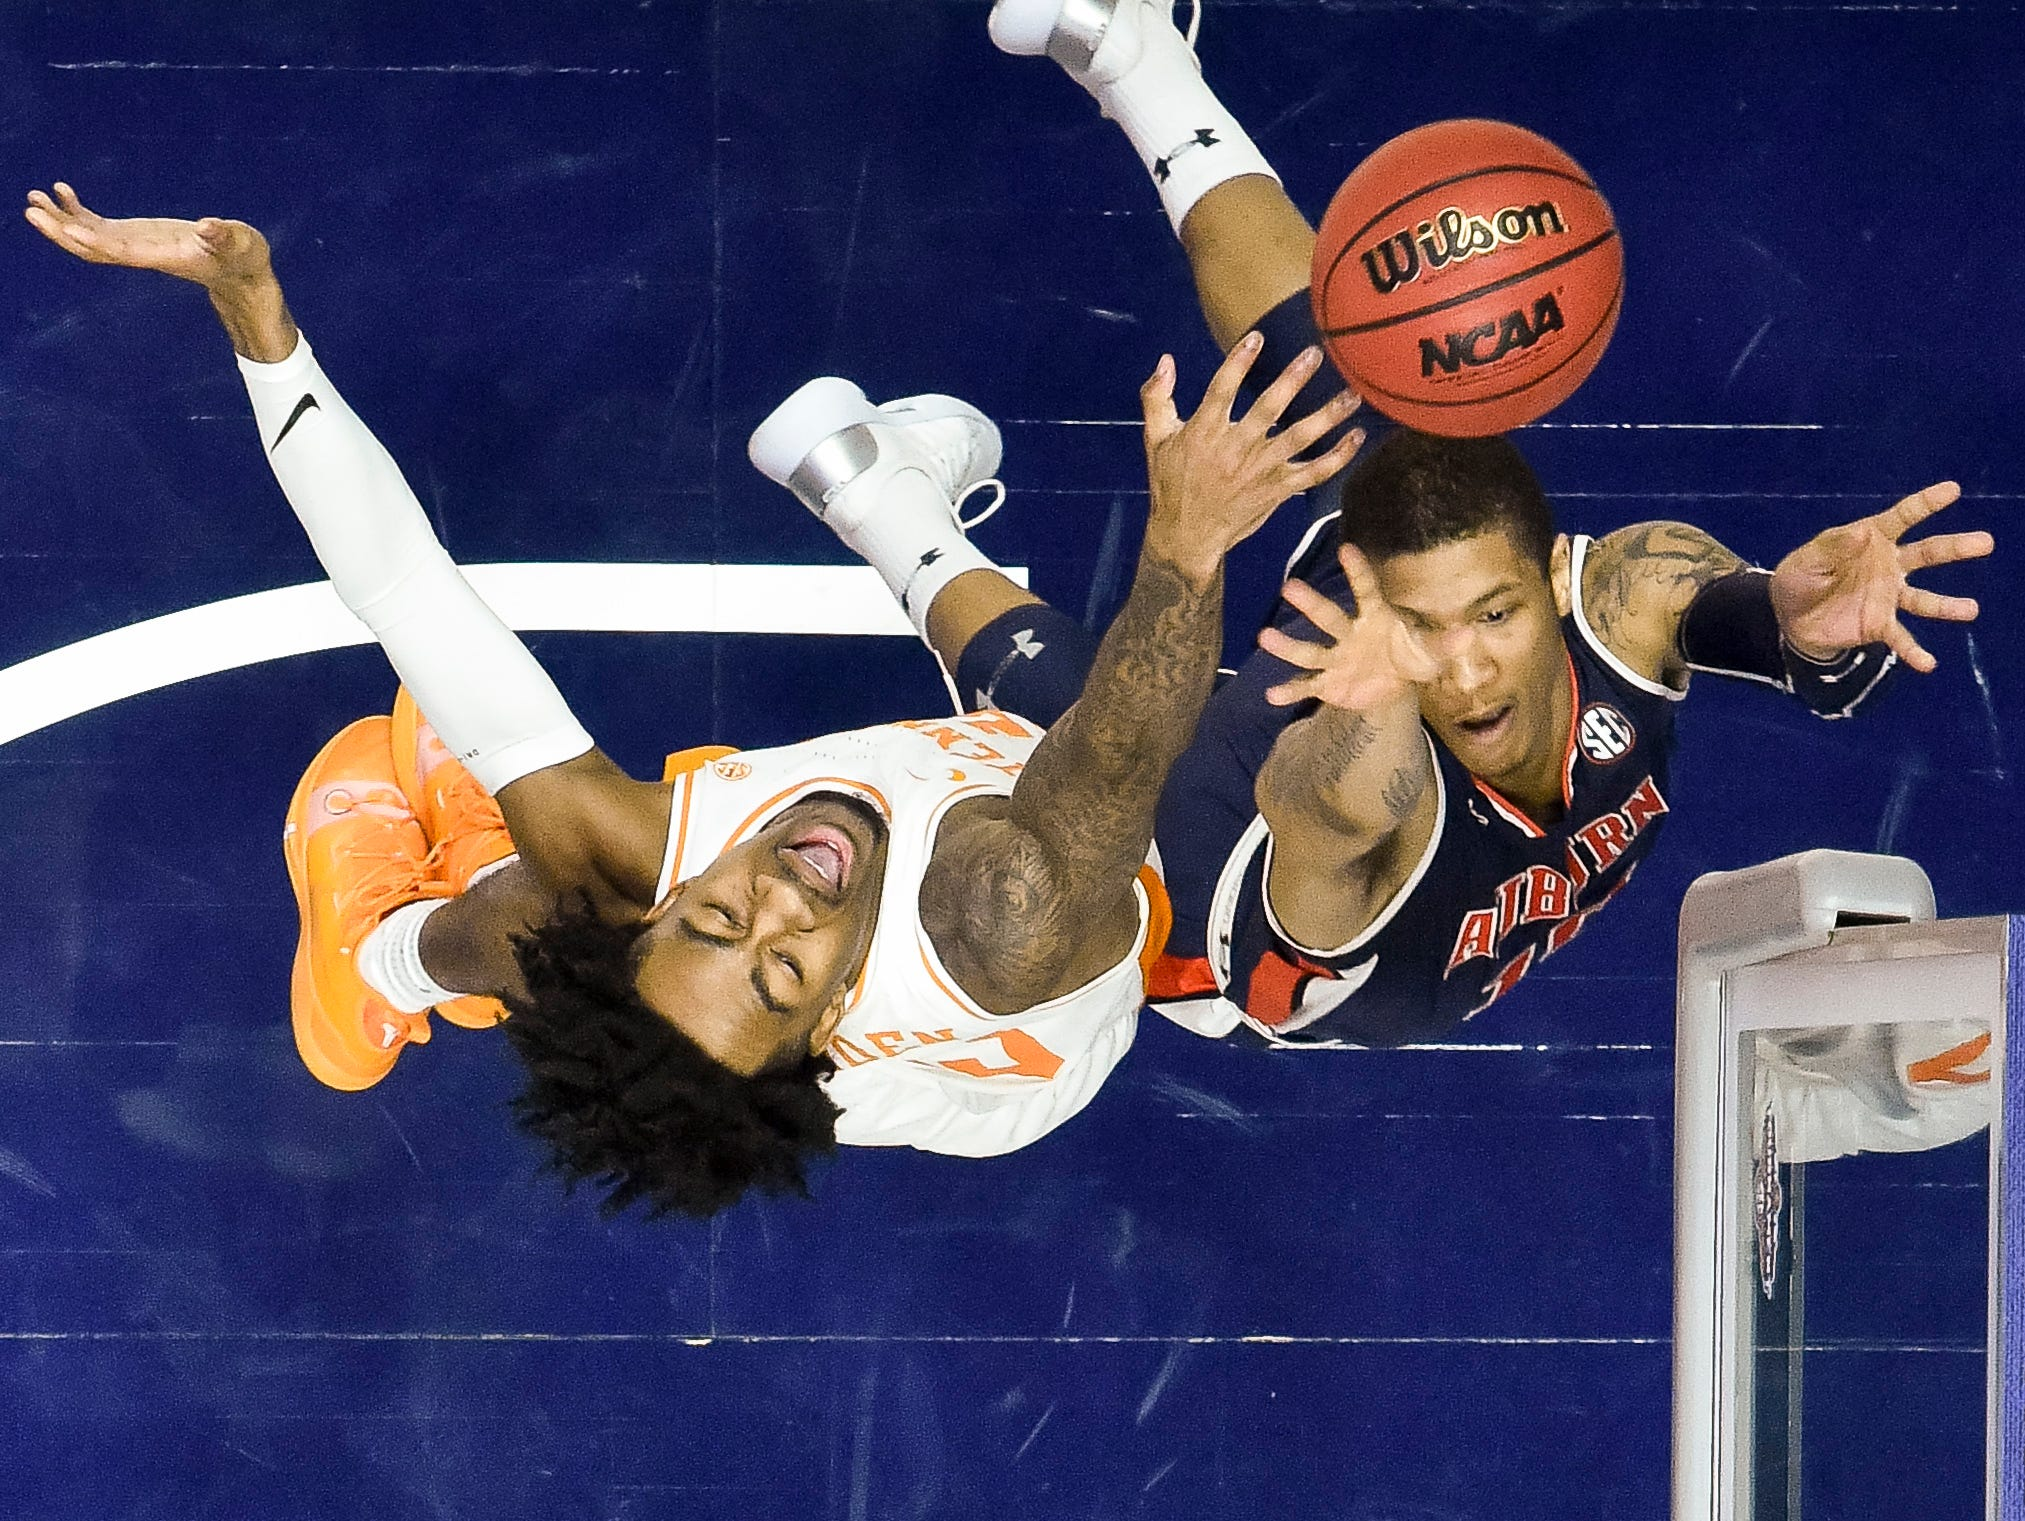 Auburn guard Samir Doughty (10) battles Tennessee guard Jordan Bowden (23) during the second half of the SEC Men's Basketball Tournament championship game at Bridgestone Arena in Nashville, Tenn., Sunday, March 17, 2019.